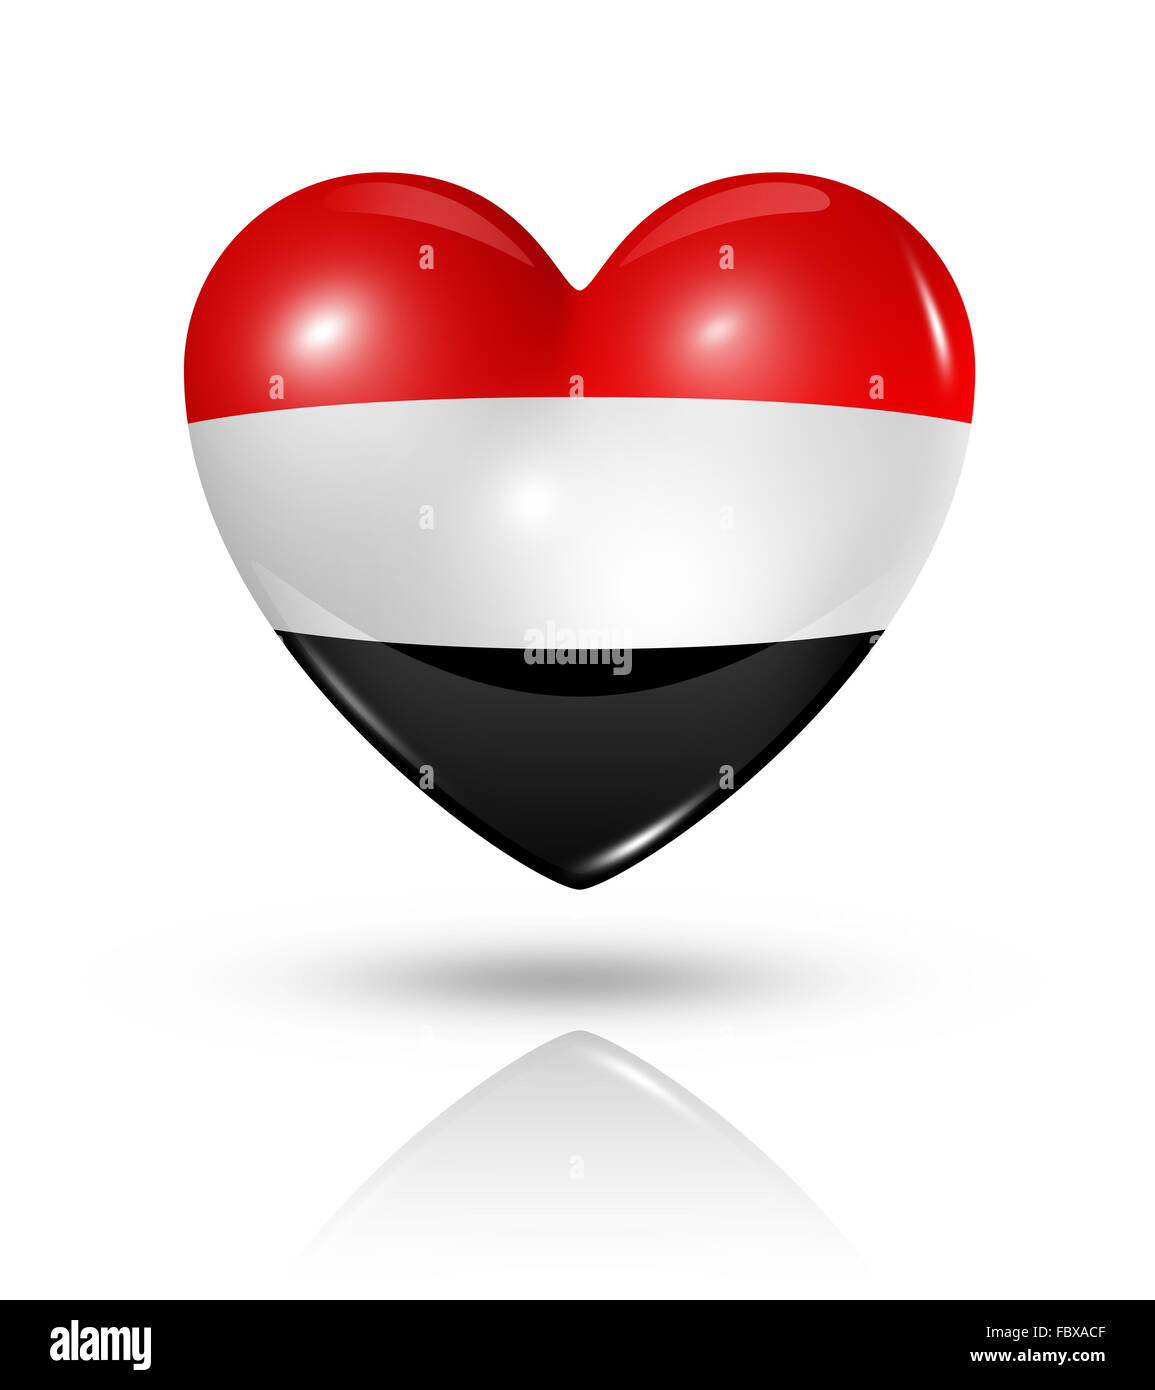 Love Yemen, heart flag icon Stock Photo